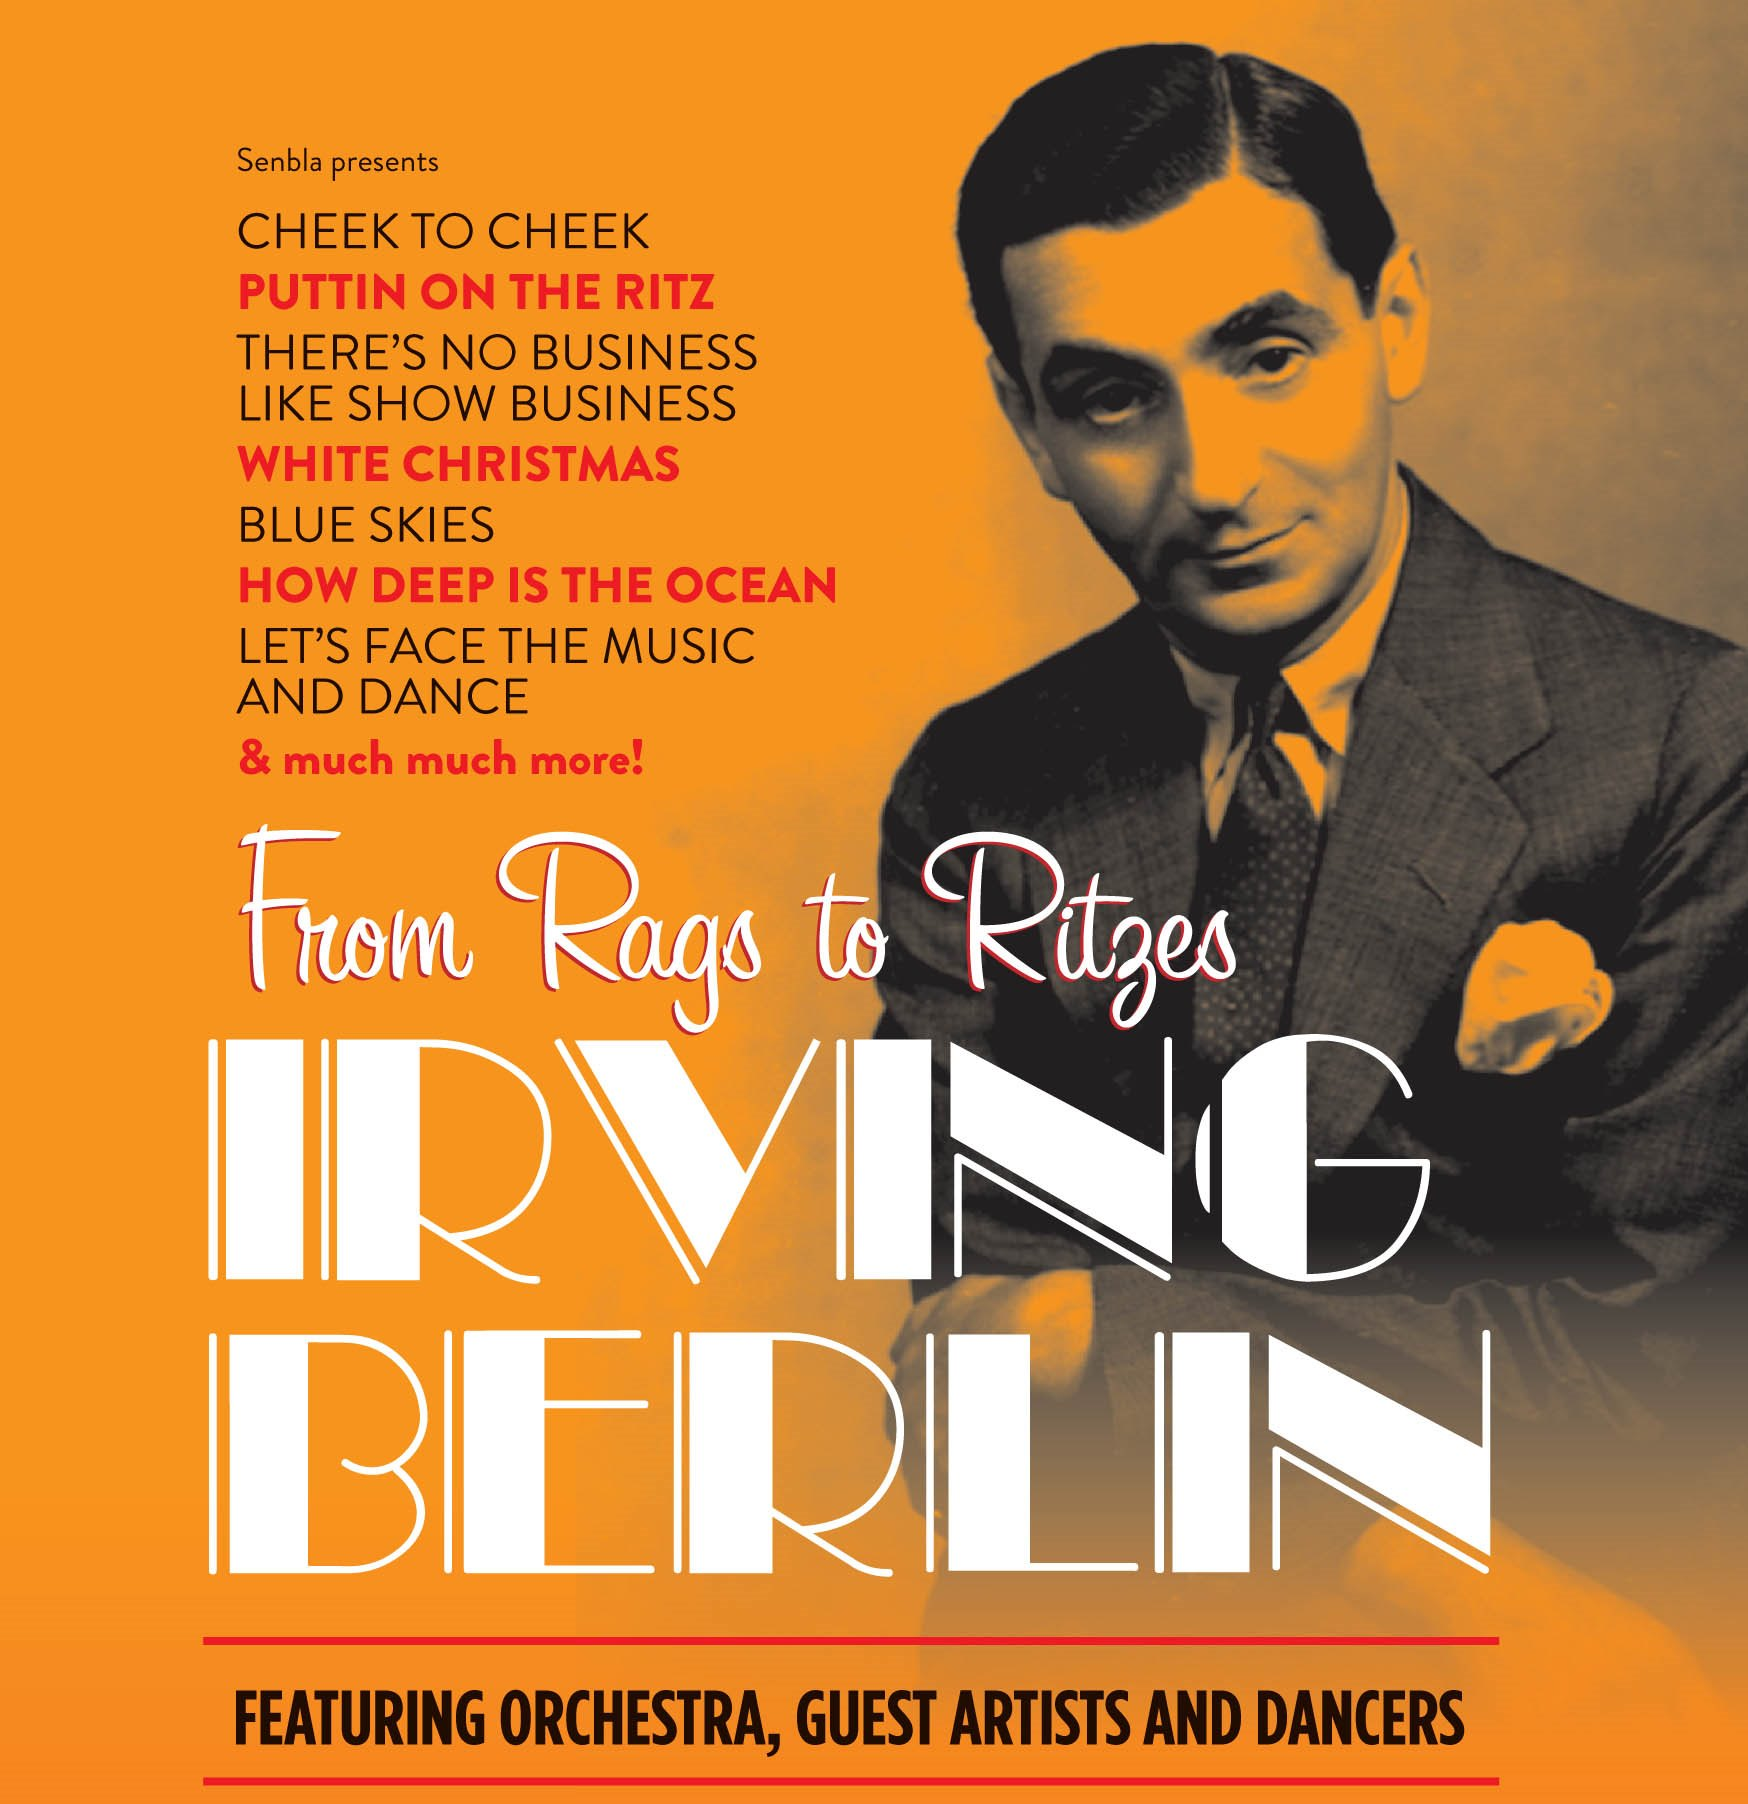 irving berlin filmirving berlin puttin on the ritz, irving berlin white christmas, irving berlin cheek to cheek, irving berlin always, irving berlin blue, irving berlin all alone, irving berlin always lyrics, irving berlin blue sky, irving berlin remember, irving berlin love songs, irving berlin public domain, irving berlin god bless america, irving berlin white, irving berlin what'll i do, irving berlin wiki, irving berlin mp3, irving berlin pdf, irving berlin medley, irving berlin film, irving berlin a hundred years